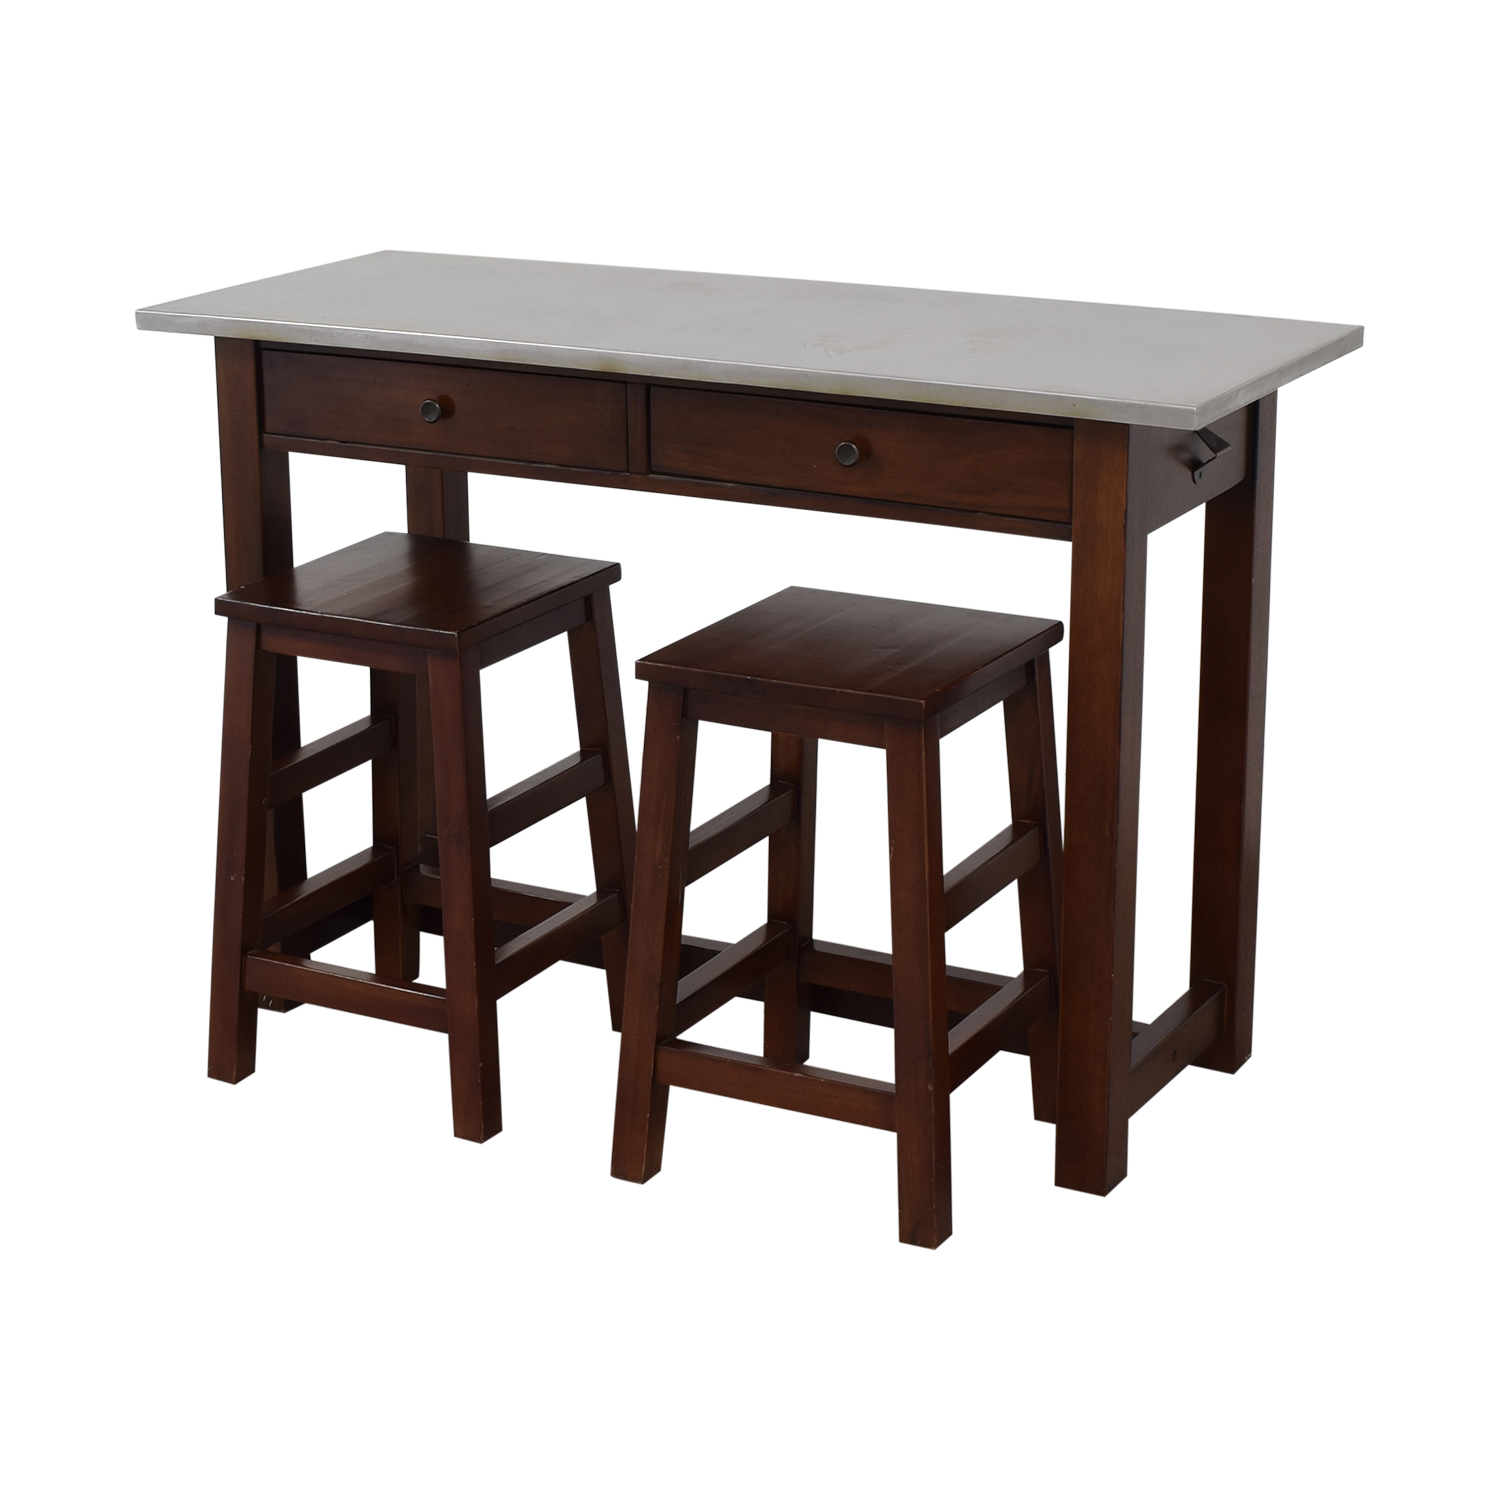 Awesome 64 Off Pottery Barn Pottery Barn Balboa Table And Stools Tables Machost Co Dining Chair Design Ideas Machostcouk